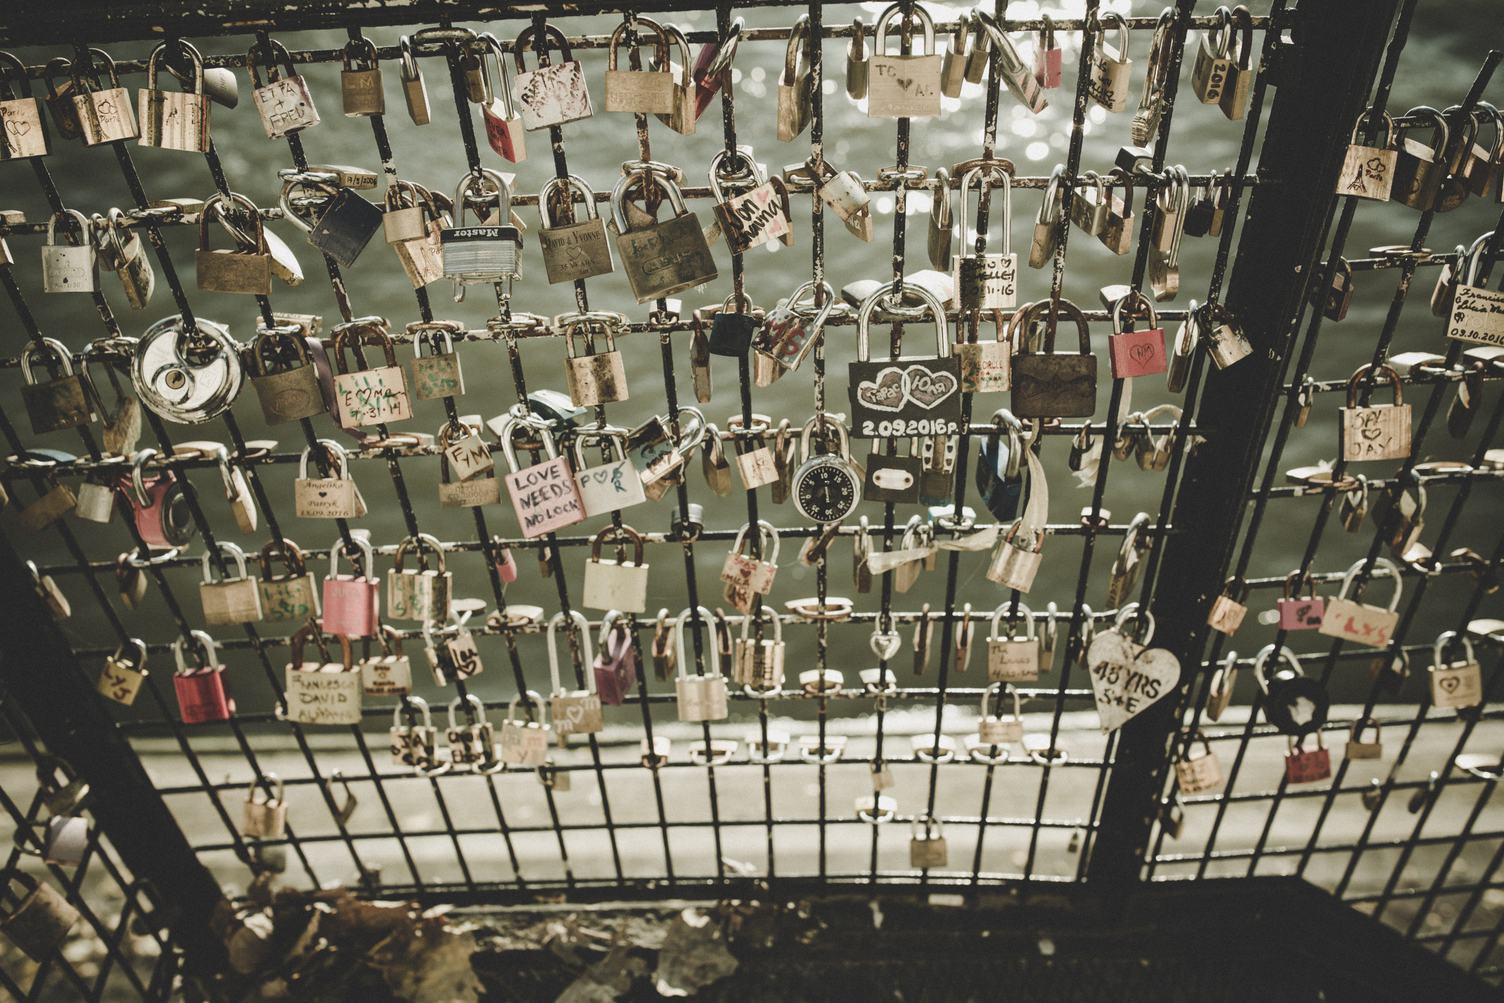 Love Symbolising Padlocks Attached to the Bridge Barrier